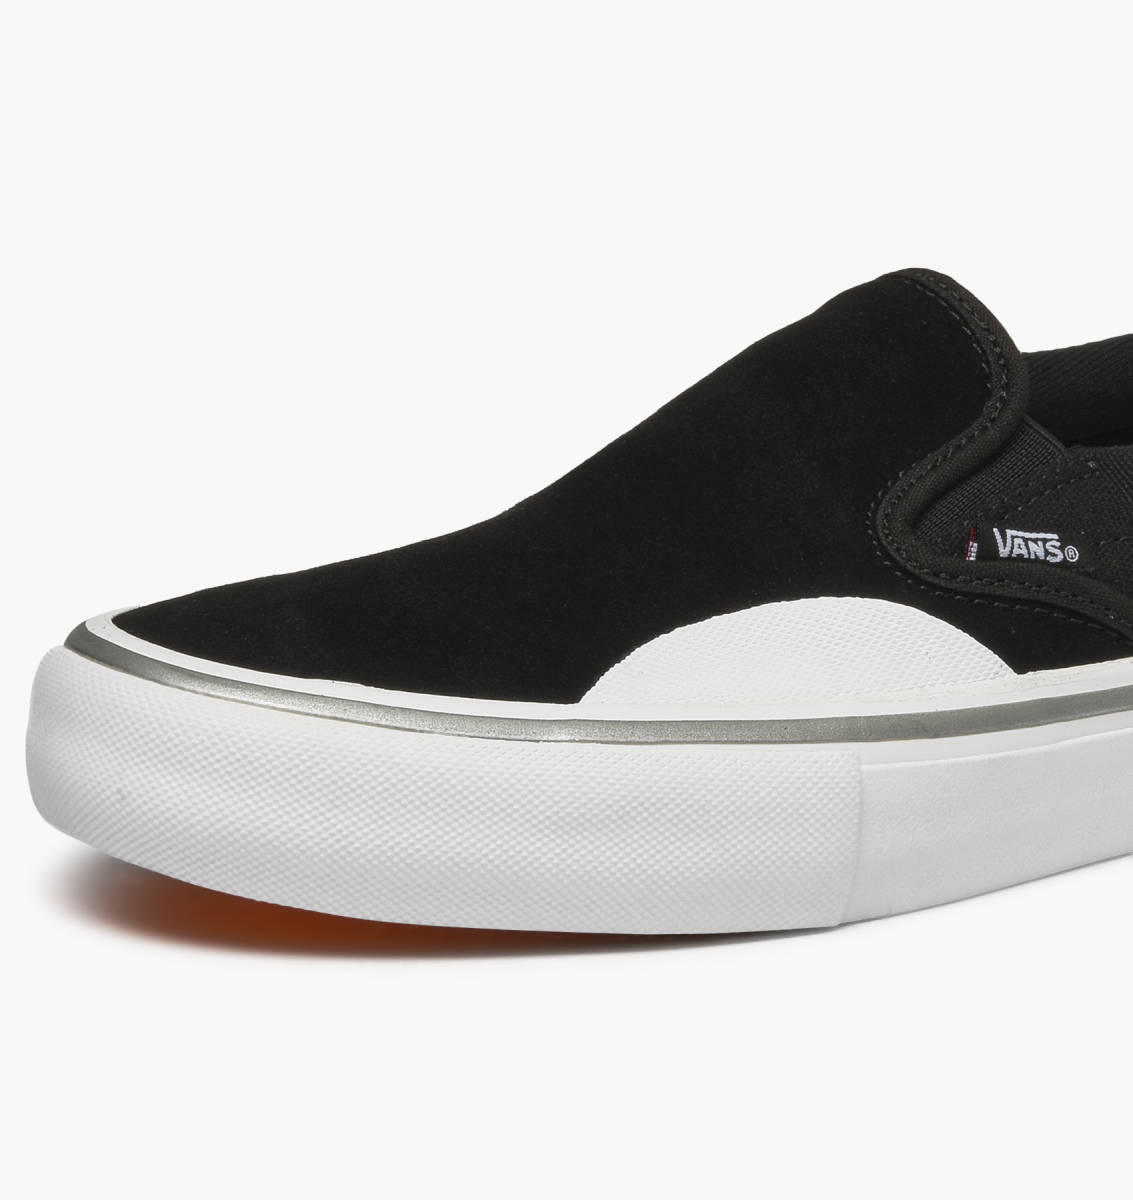 Vans x Independent Slip On Pro in schwarz - V0097MU2B | everysize